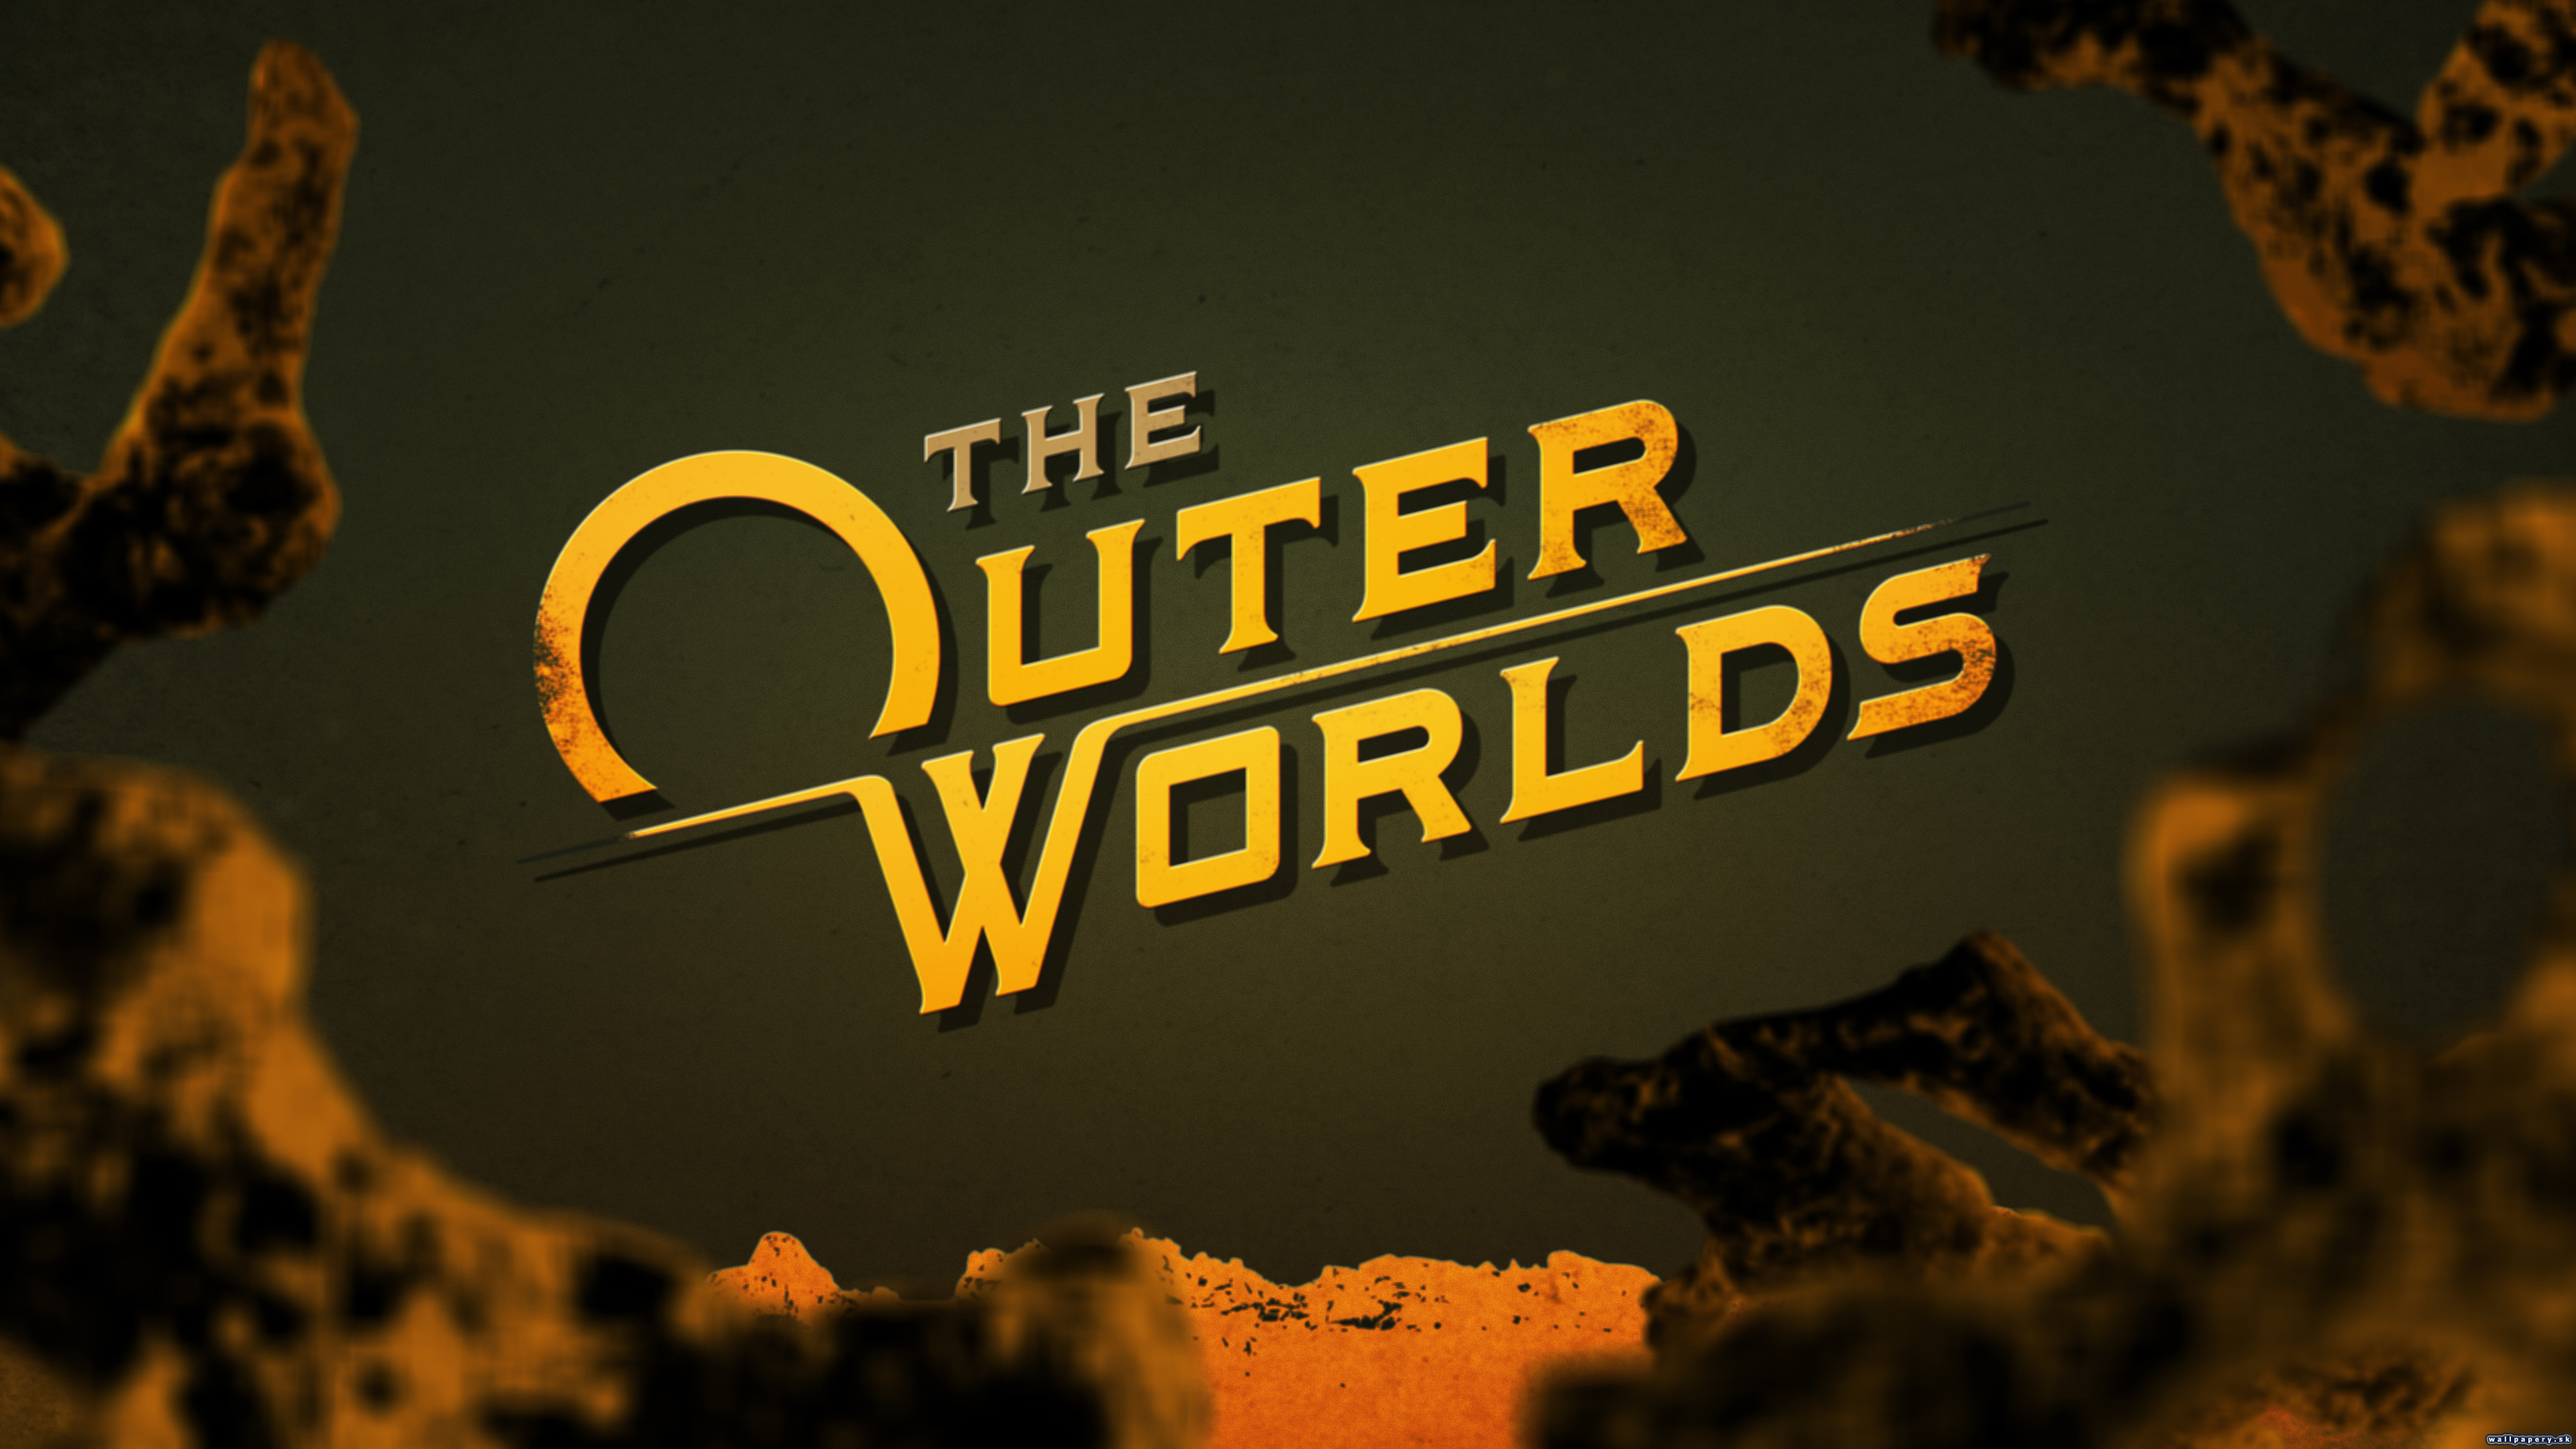 The Outer Worlds - wallpaper 3